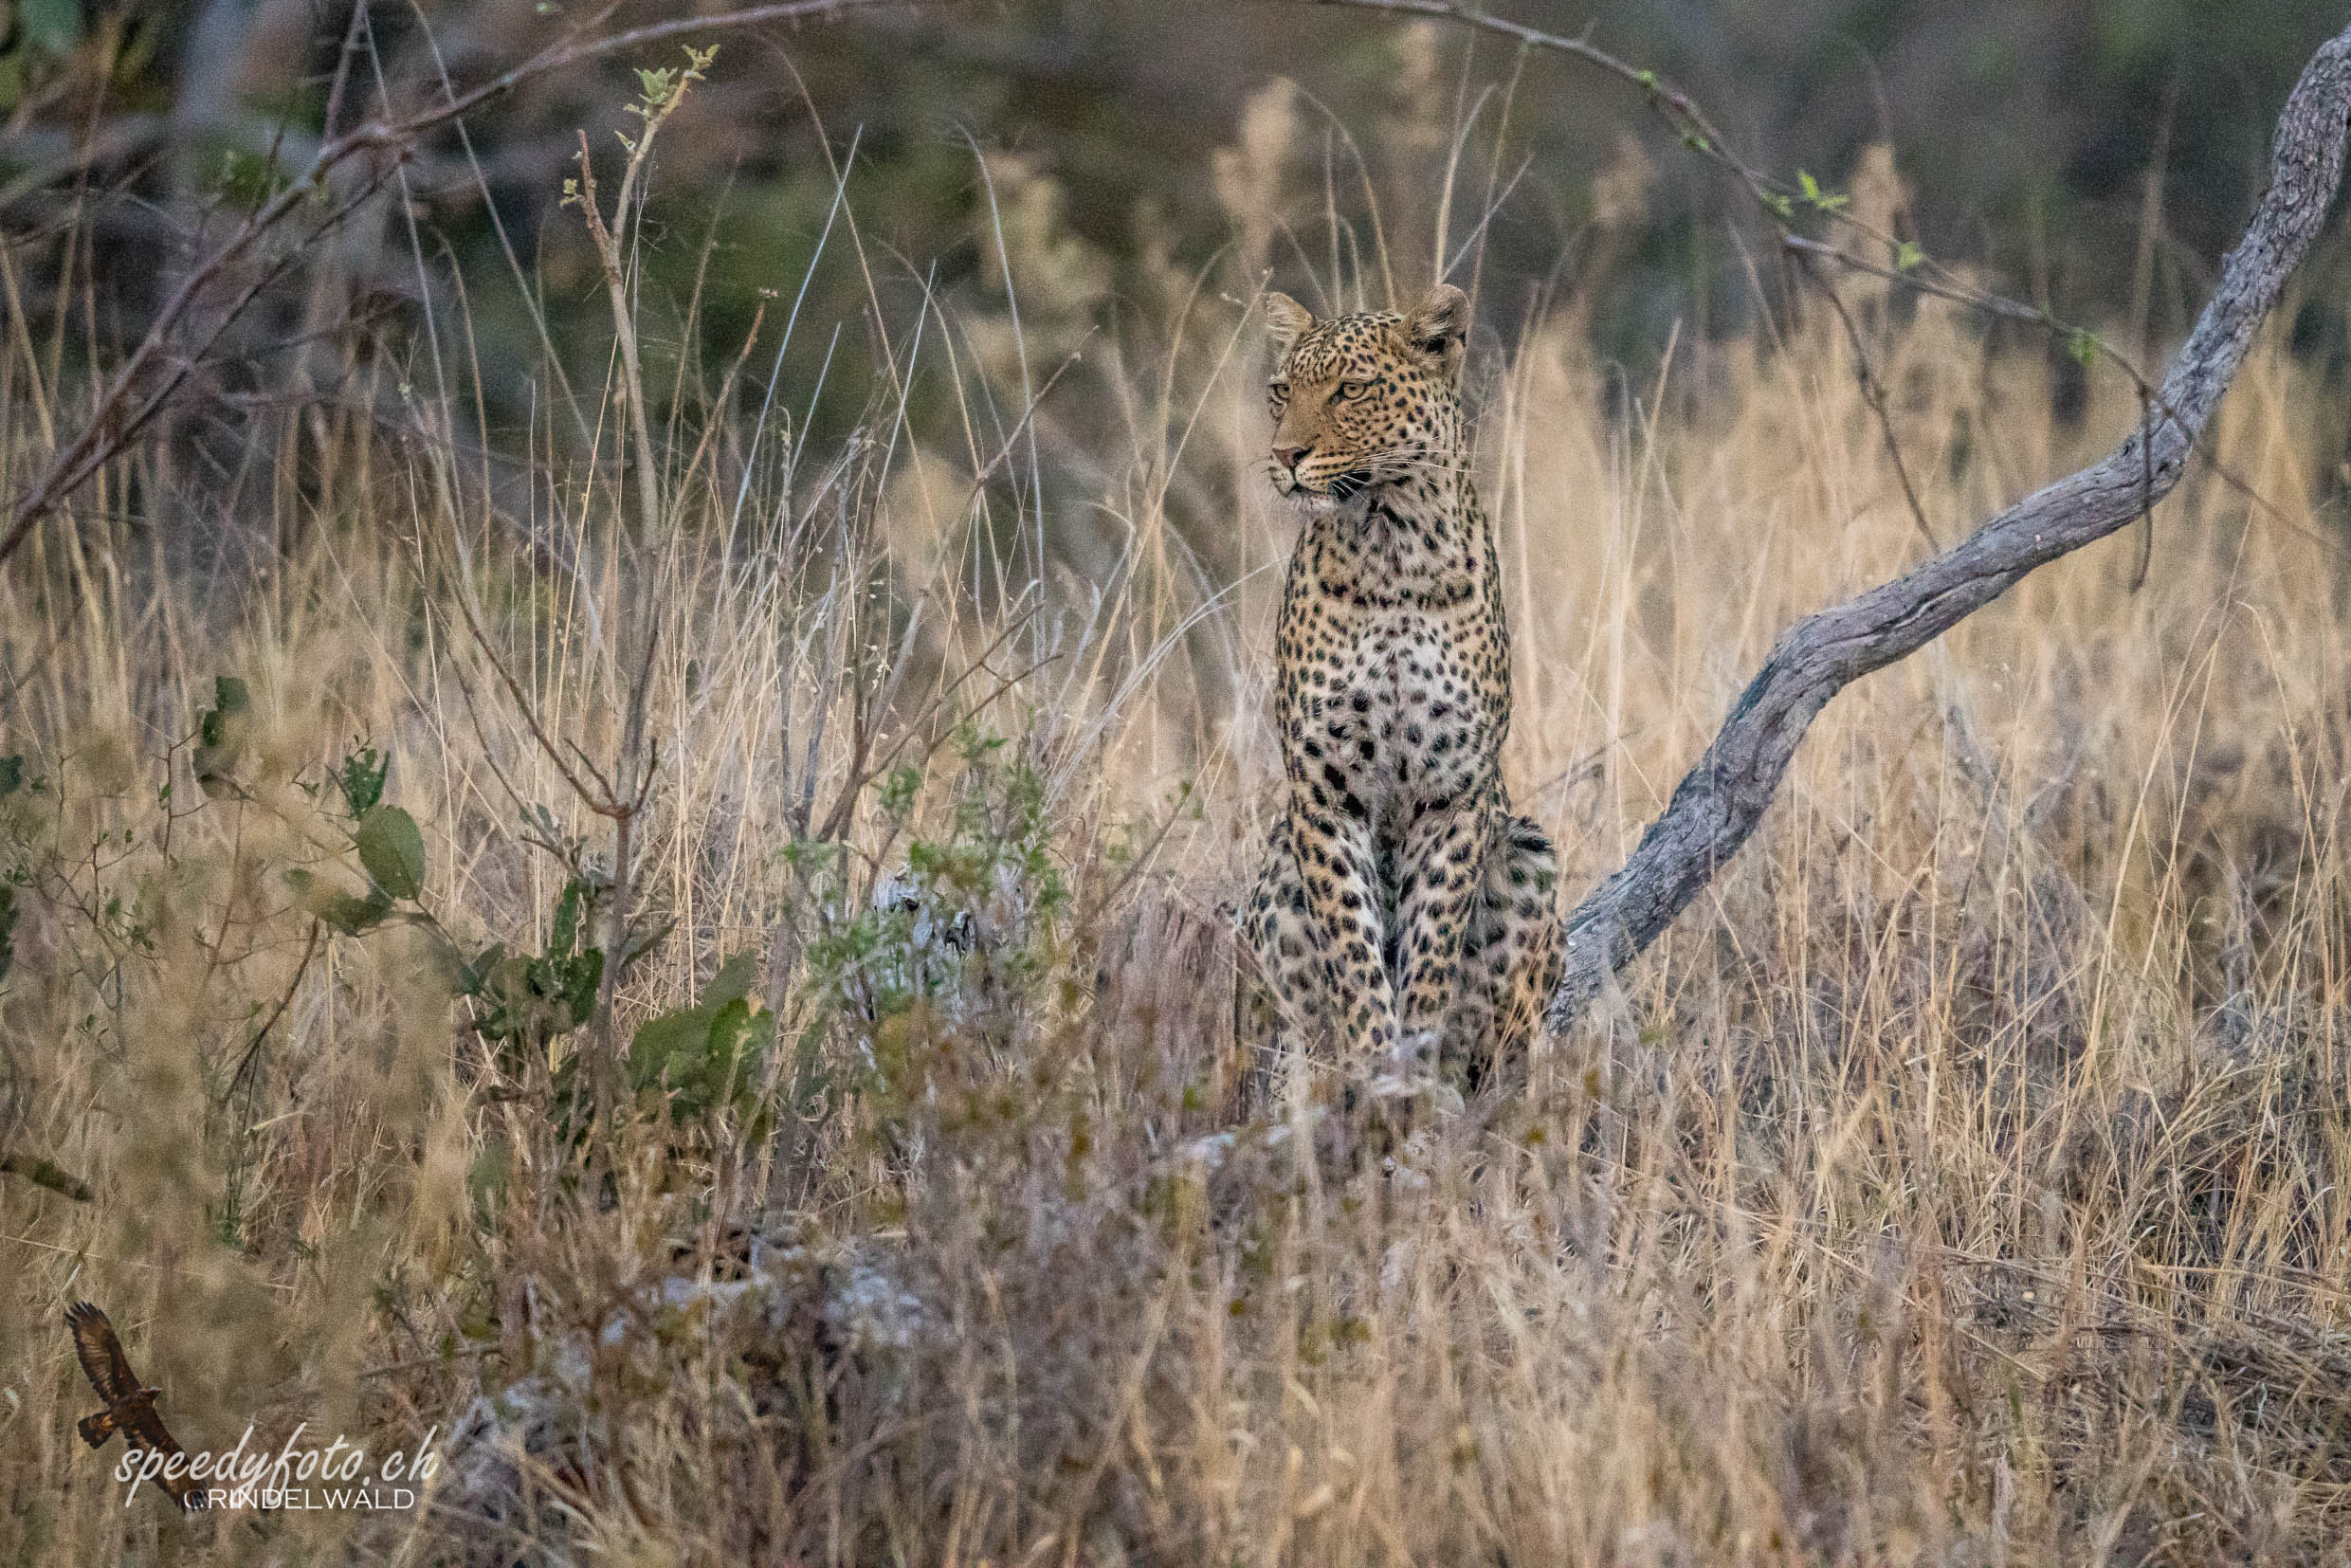 Leopard - very early Morning